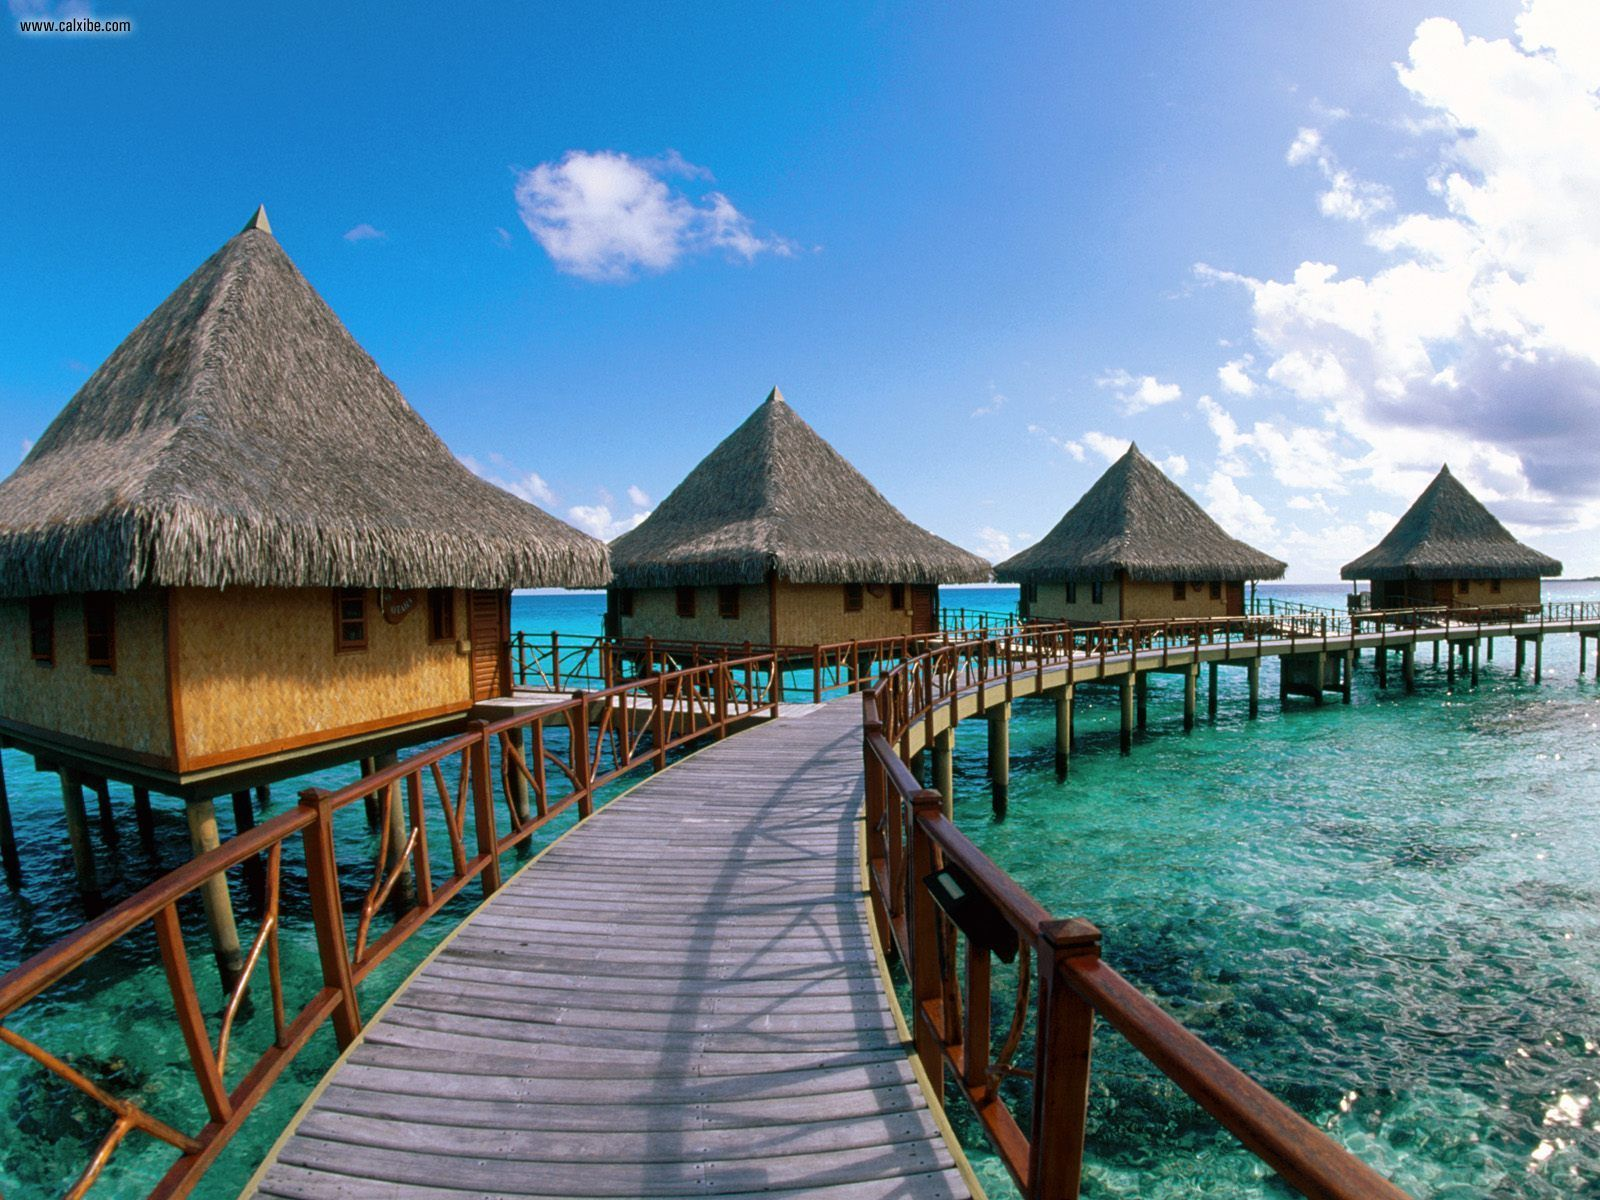 Kia Ora Hotel In Rangiroa Tuamotu Islands French Polynesia One Of My Favorite